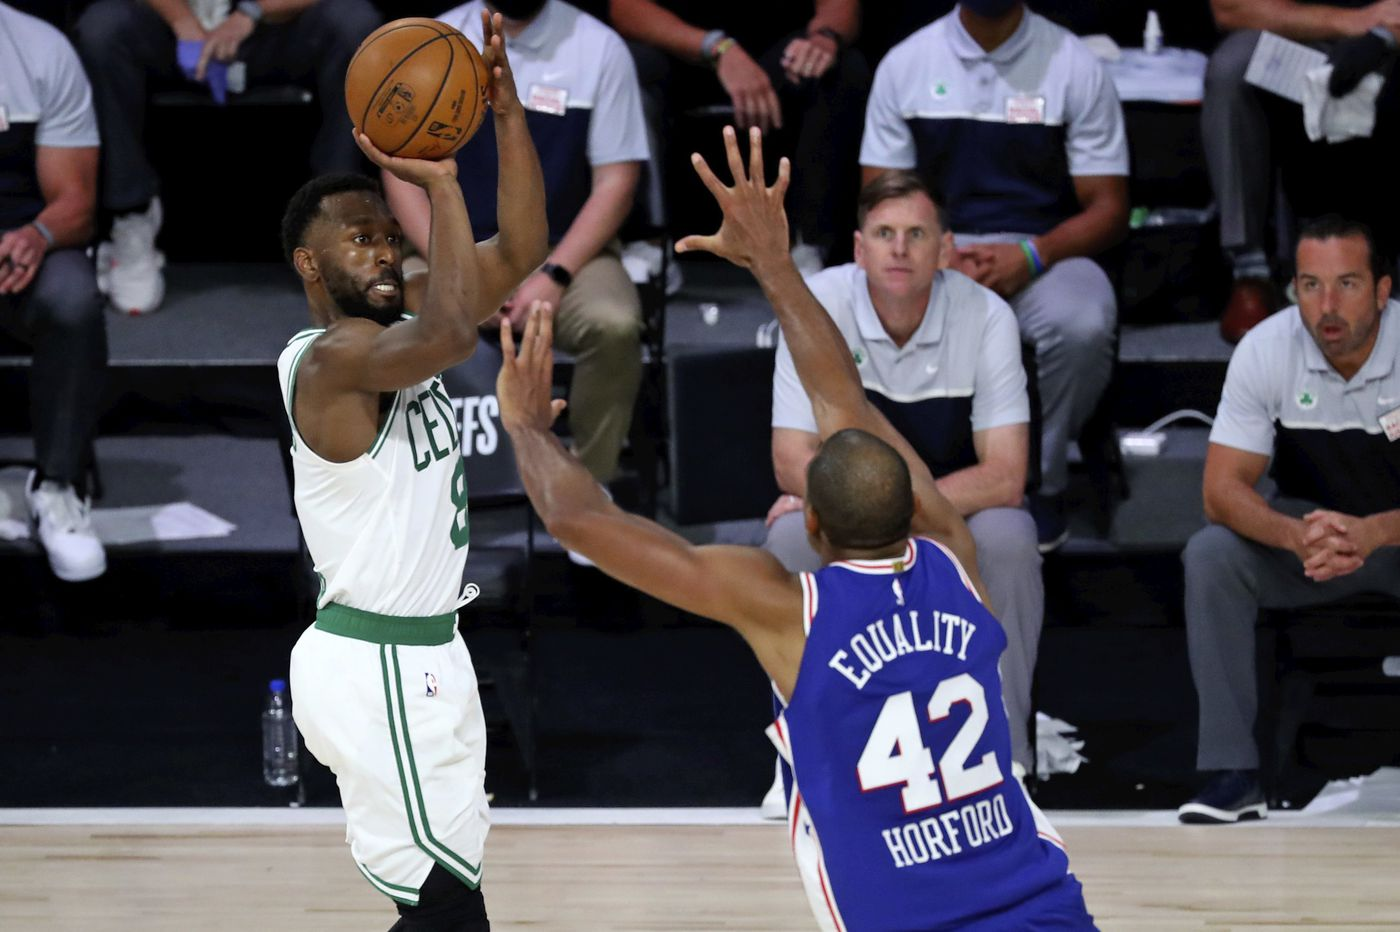 Sixers-Celtics Best/Worst: Kemba Walker's clutch play, Al Horford looking out of place, and Furkan Korkmaz's inability to hit a shot